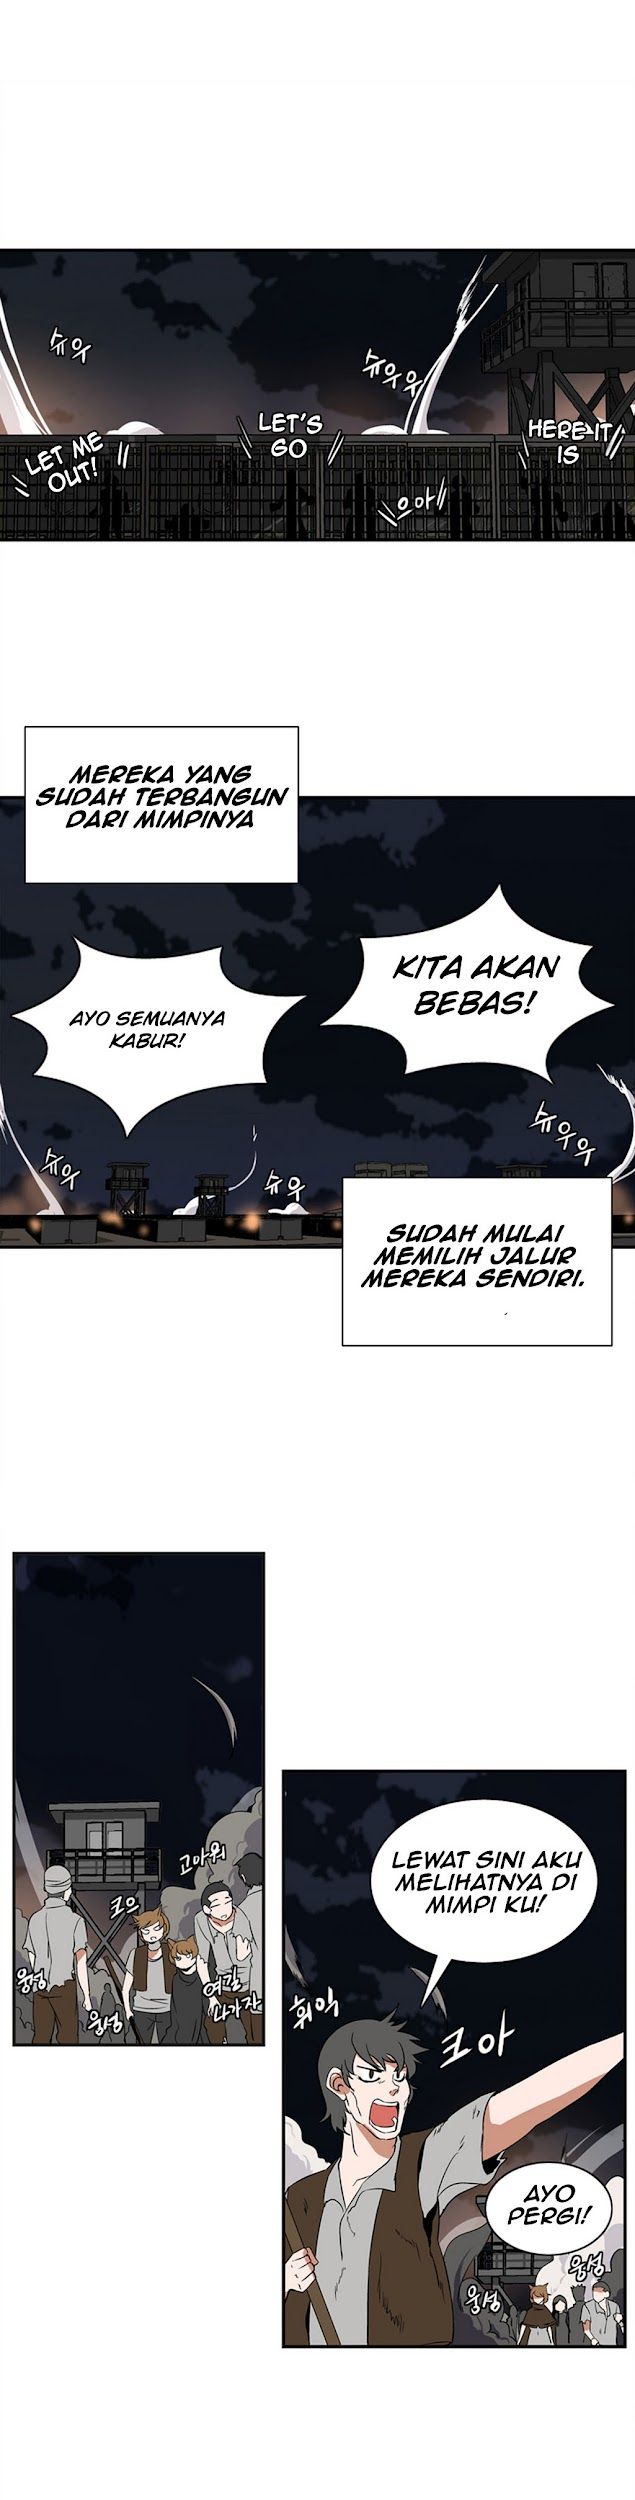 Dilarang COPAS - situs resmi www.mangacanblog.com - Komik wizardly tower 005 - chapter 5 6 Indonesia wizardly tower 005 - chapter 5 Terbaru 7|Baca Manga Komik Indonesia|Mangacan